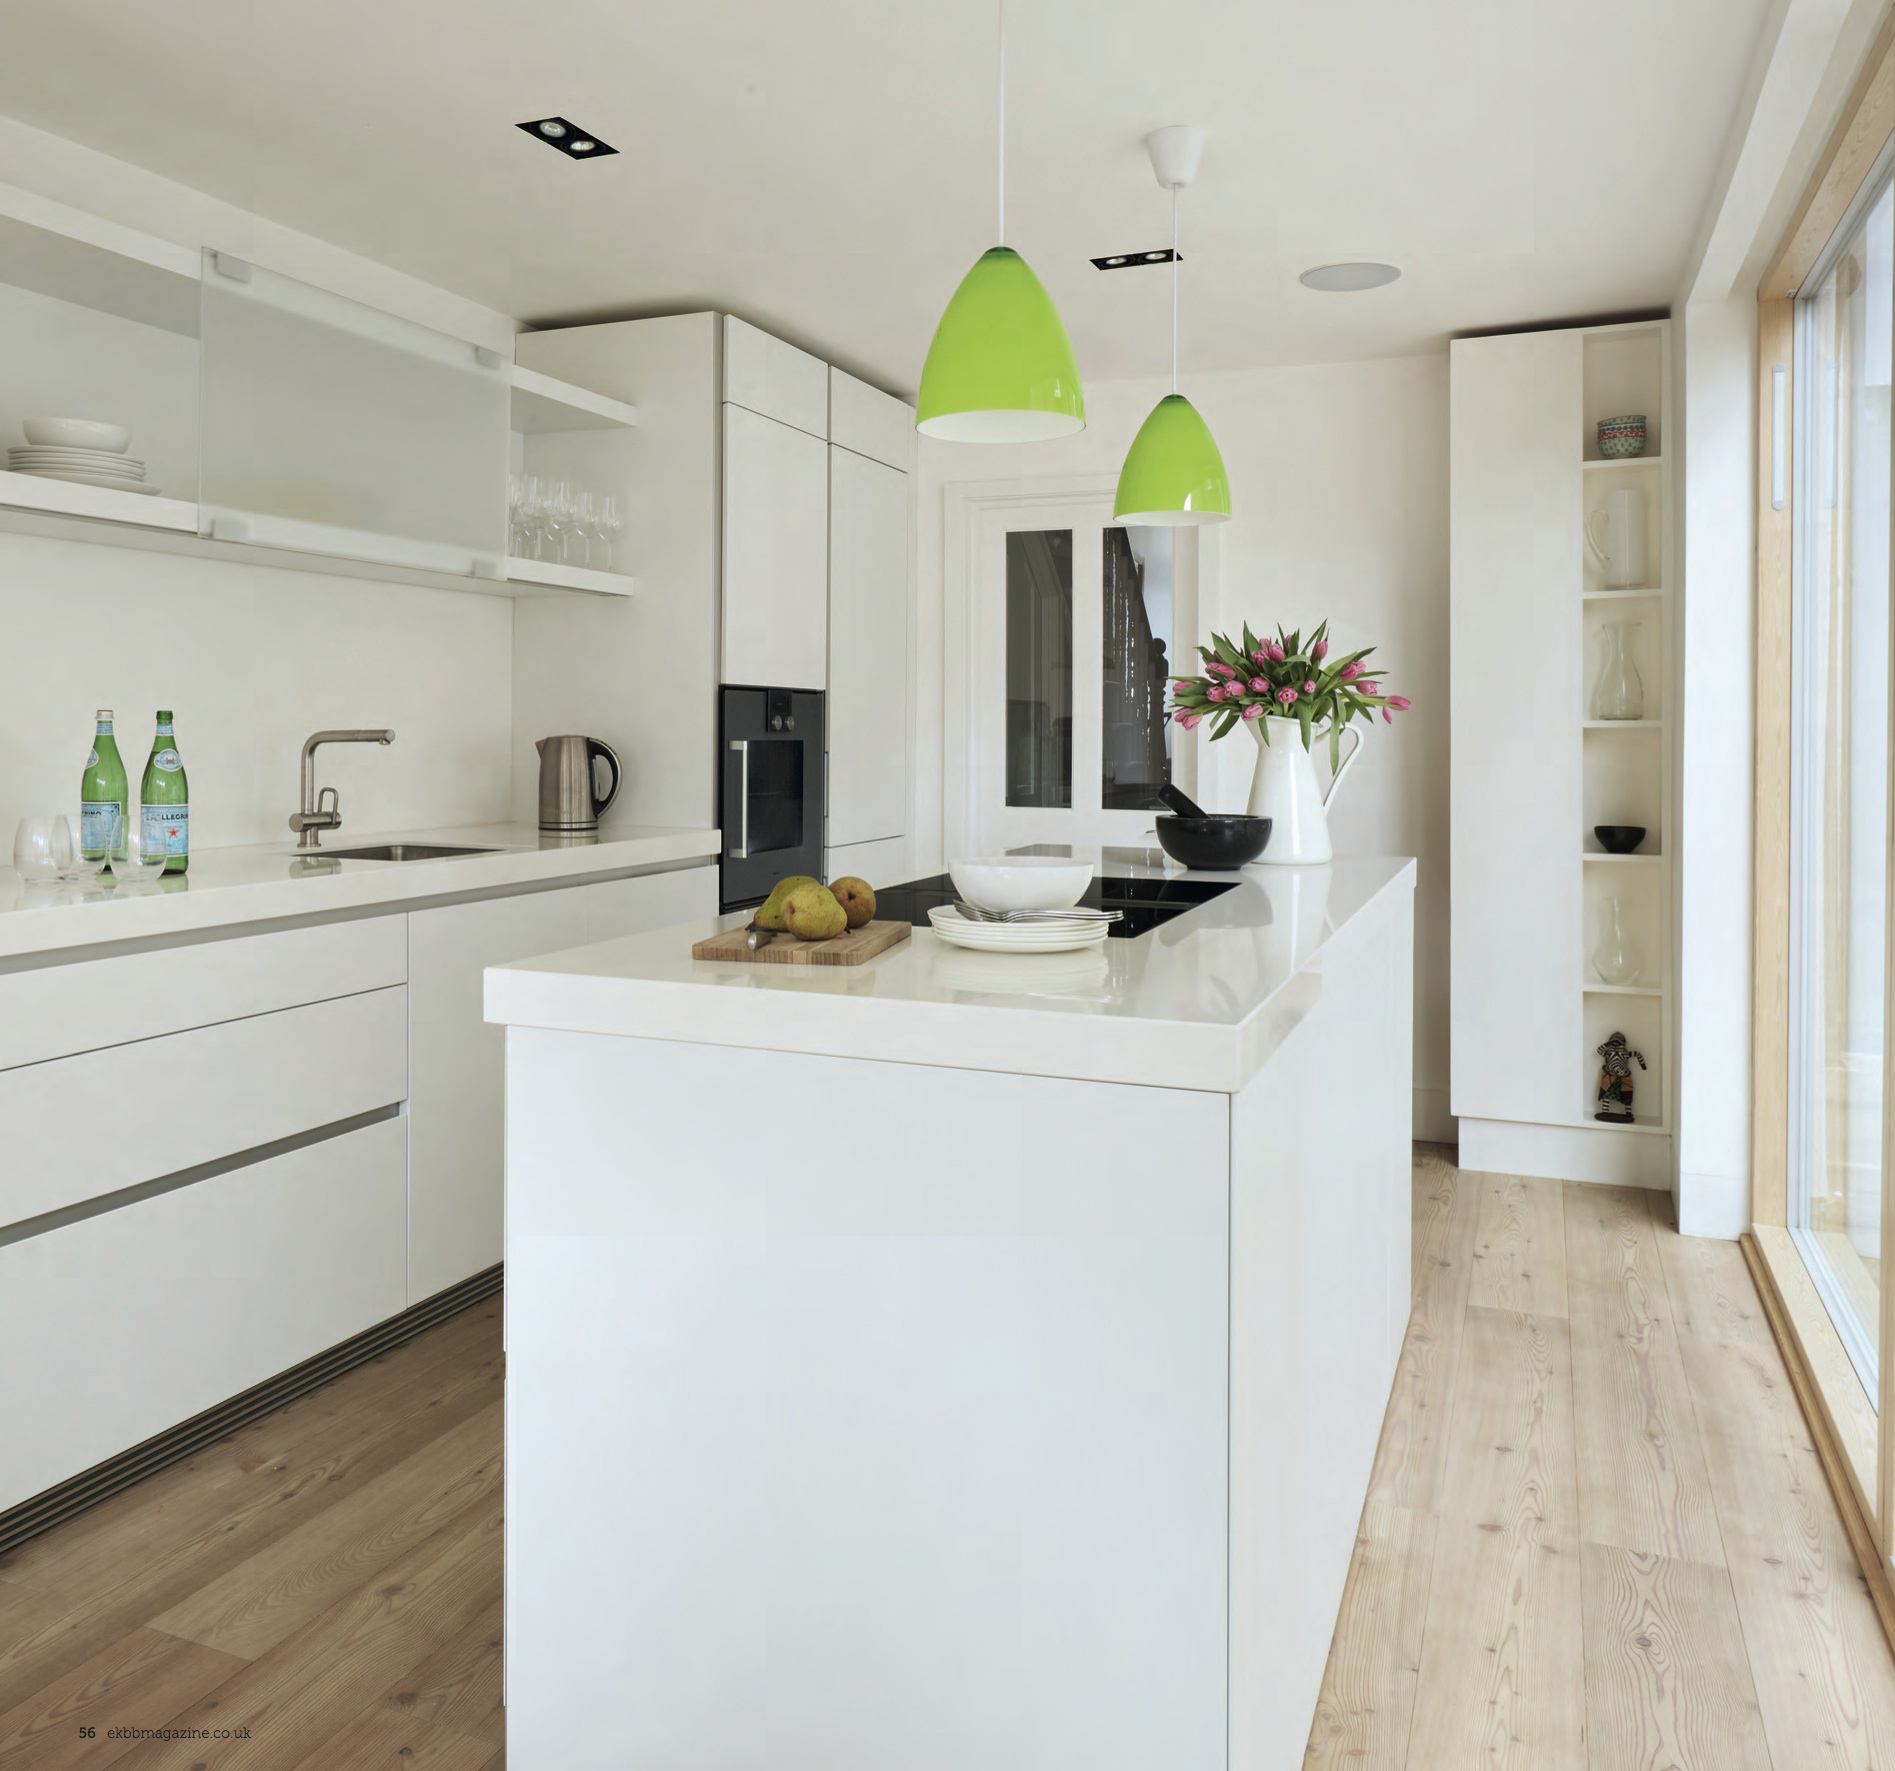 004_Remodelling and extension in South London by DHVA